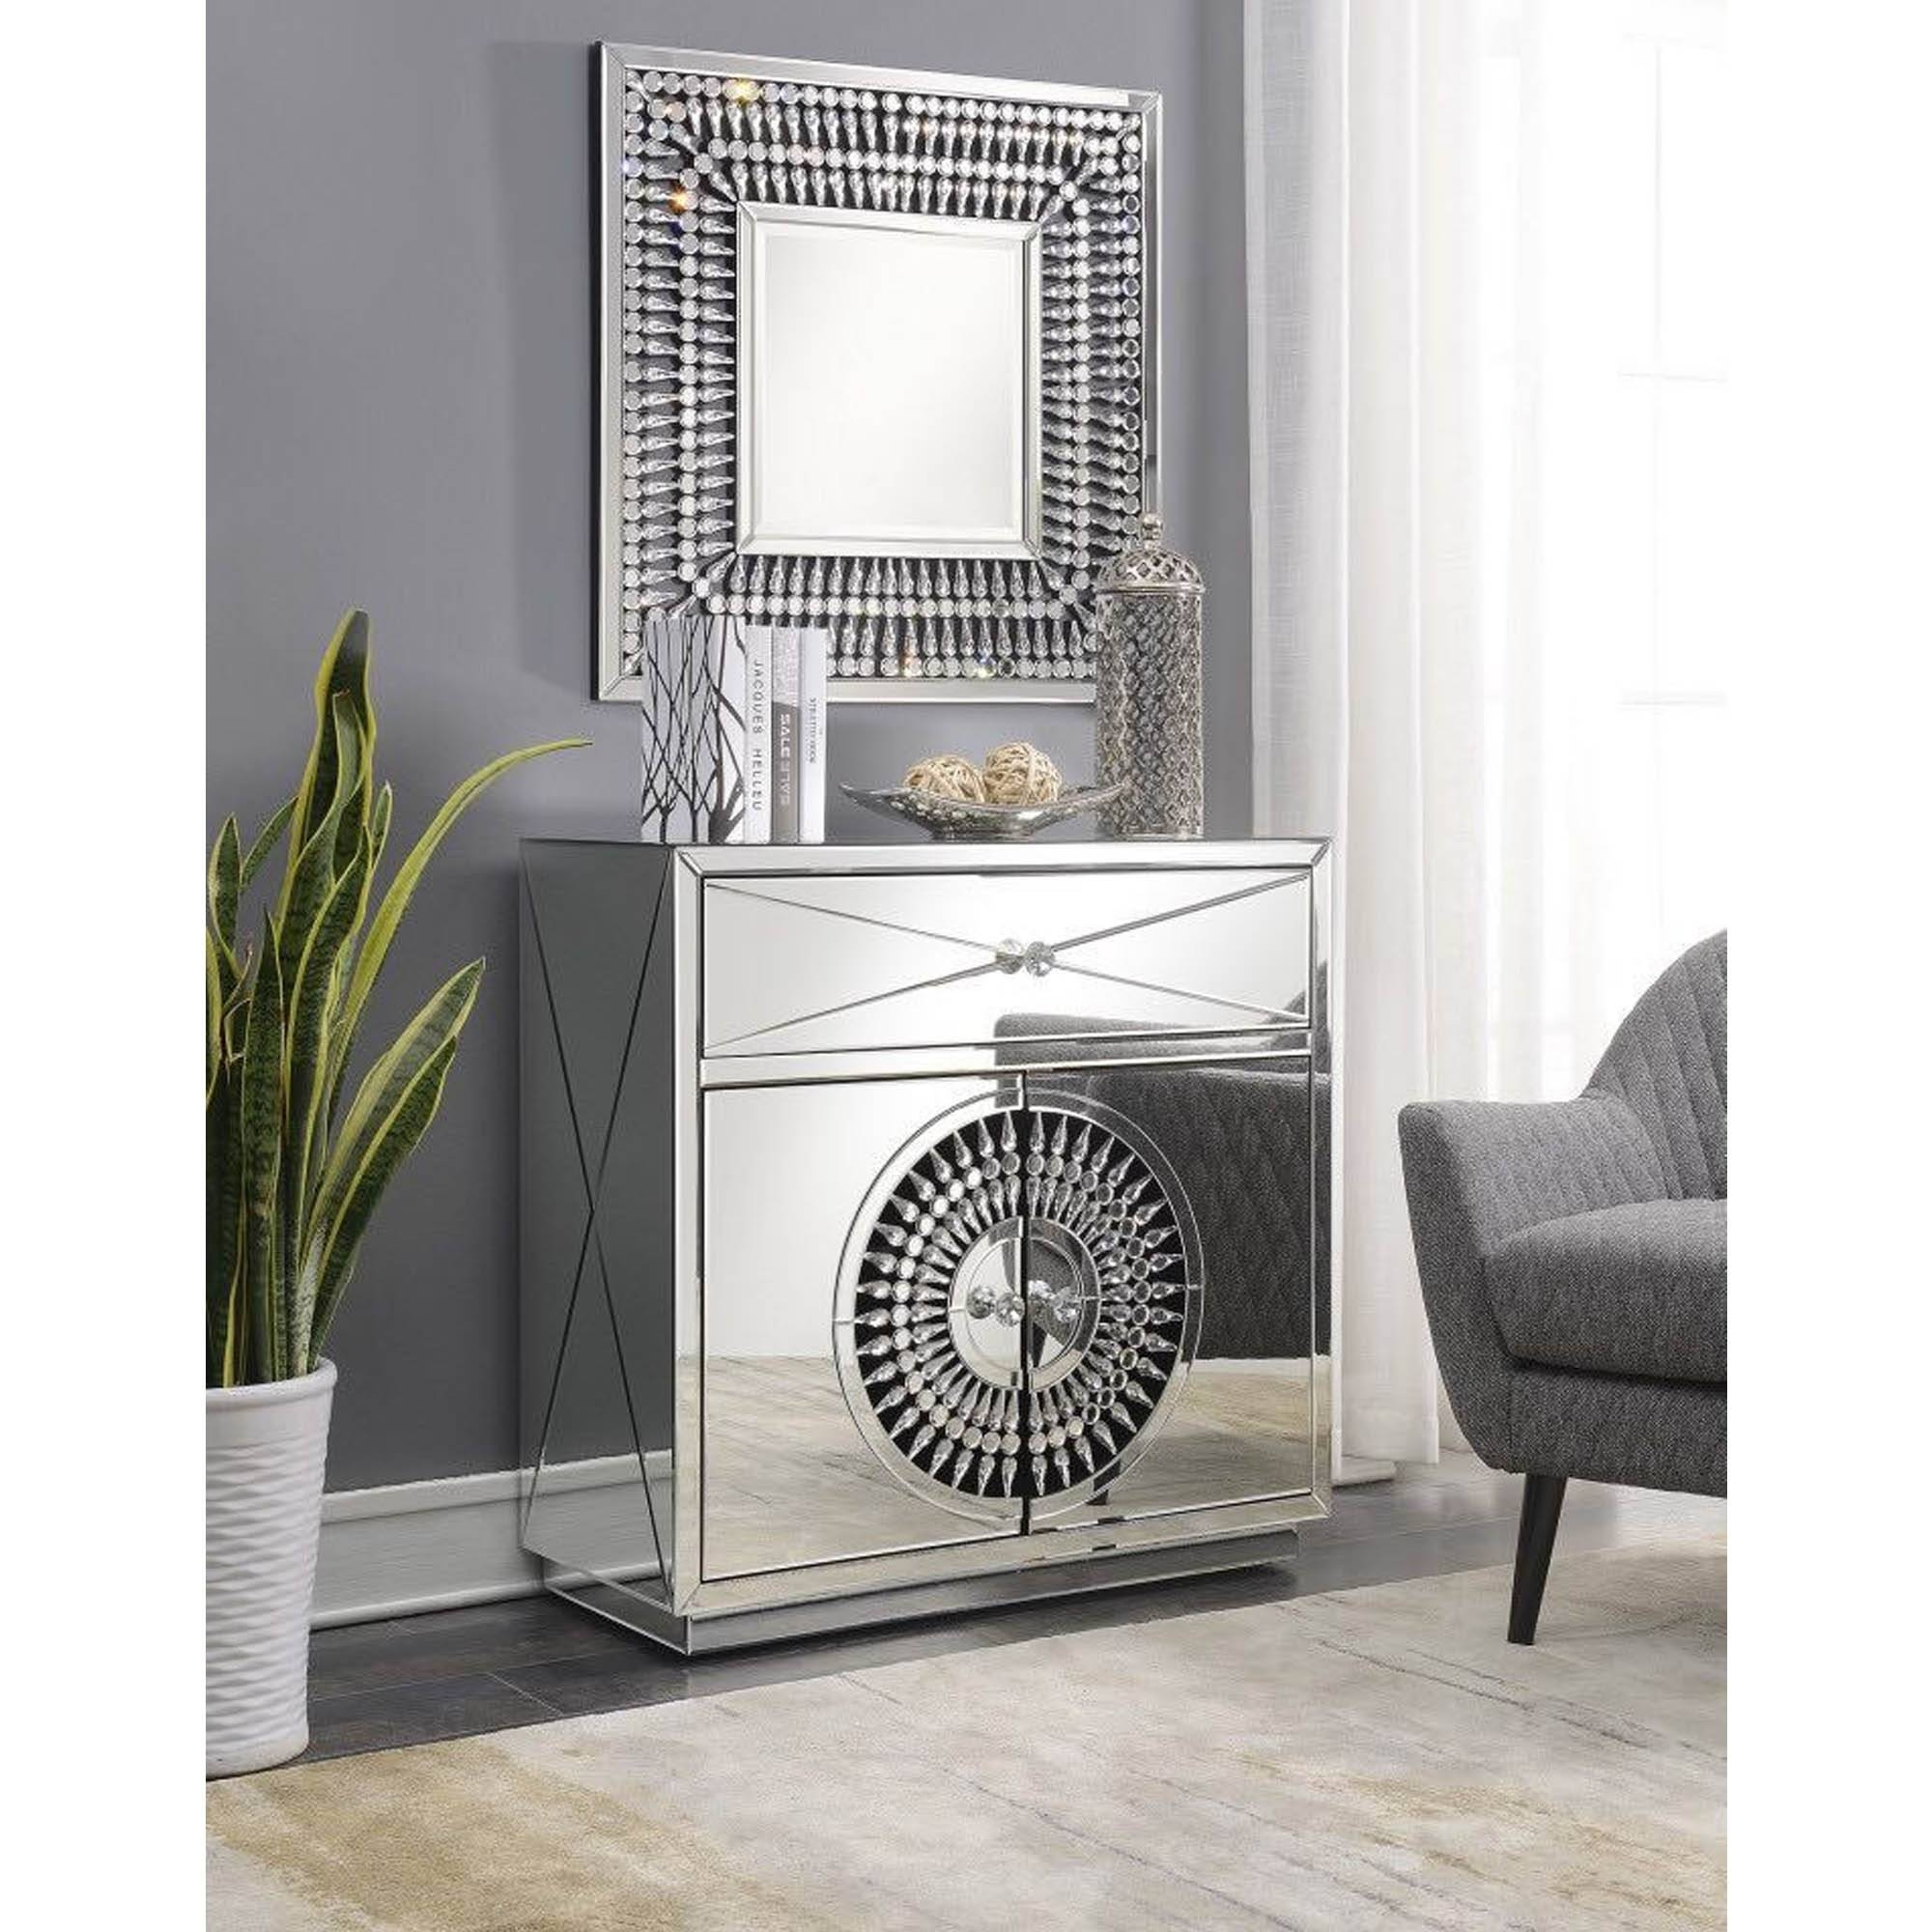 Crystal Mirrored Sideboard | Sideboard | Homesdirect365 in Mirror Sideboards (Image 3 of 15)